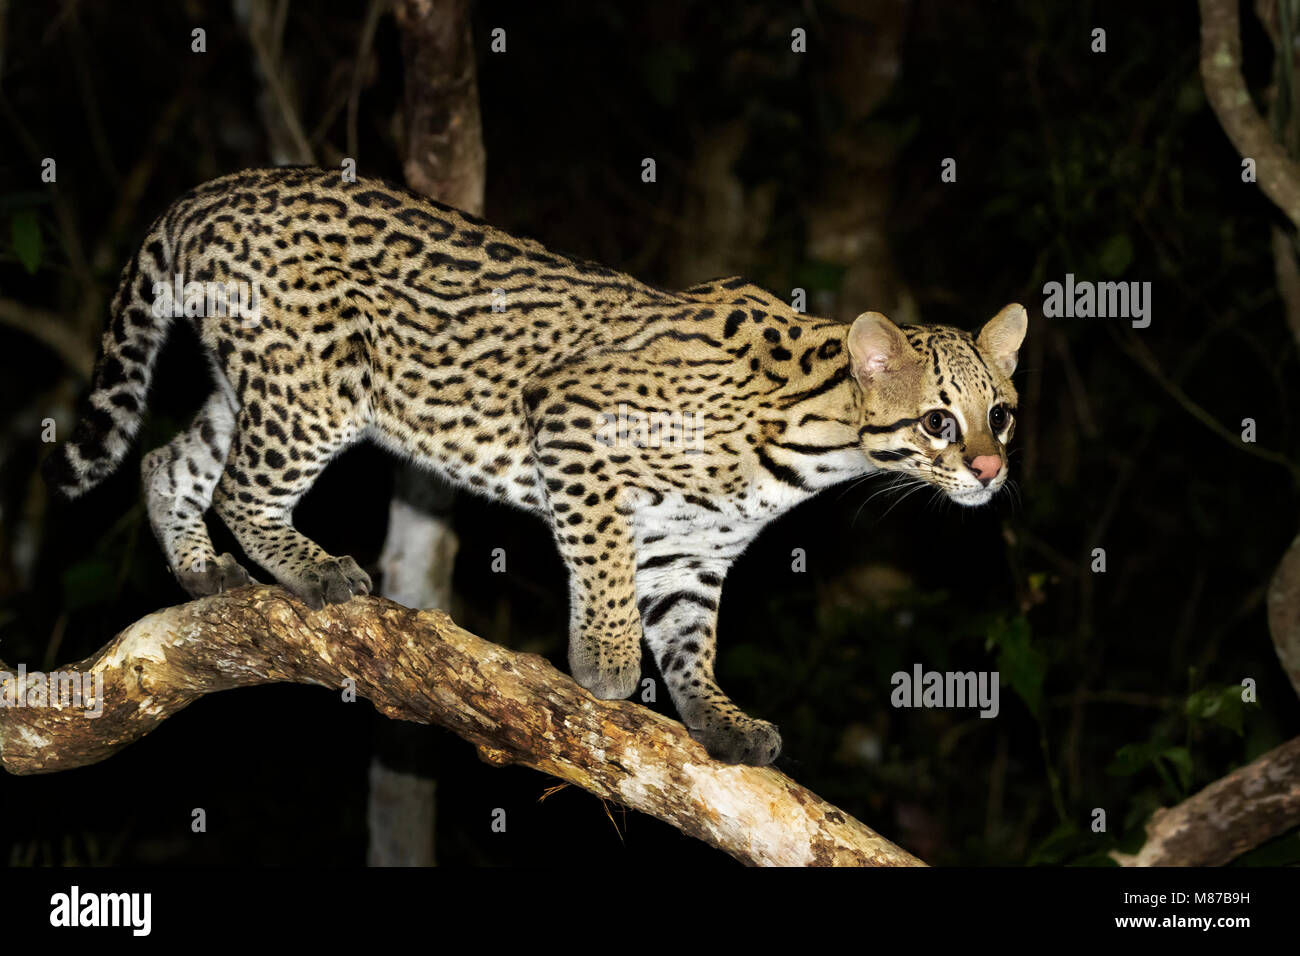 Ocelot (Leopardus pardalis) at night, Pantanal, Mato Grosso, Brazil - Stock Image